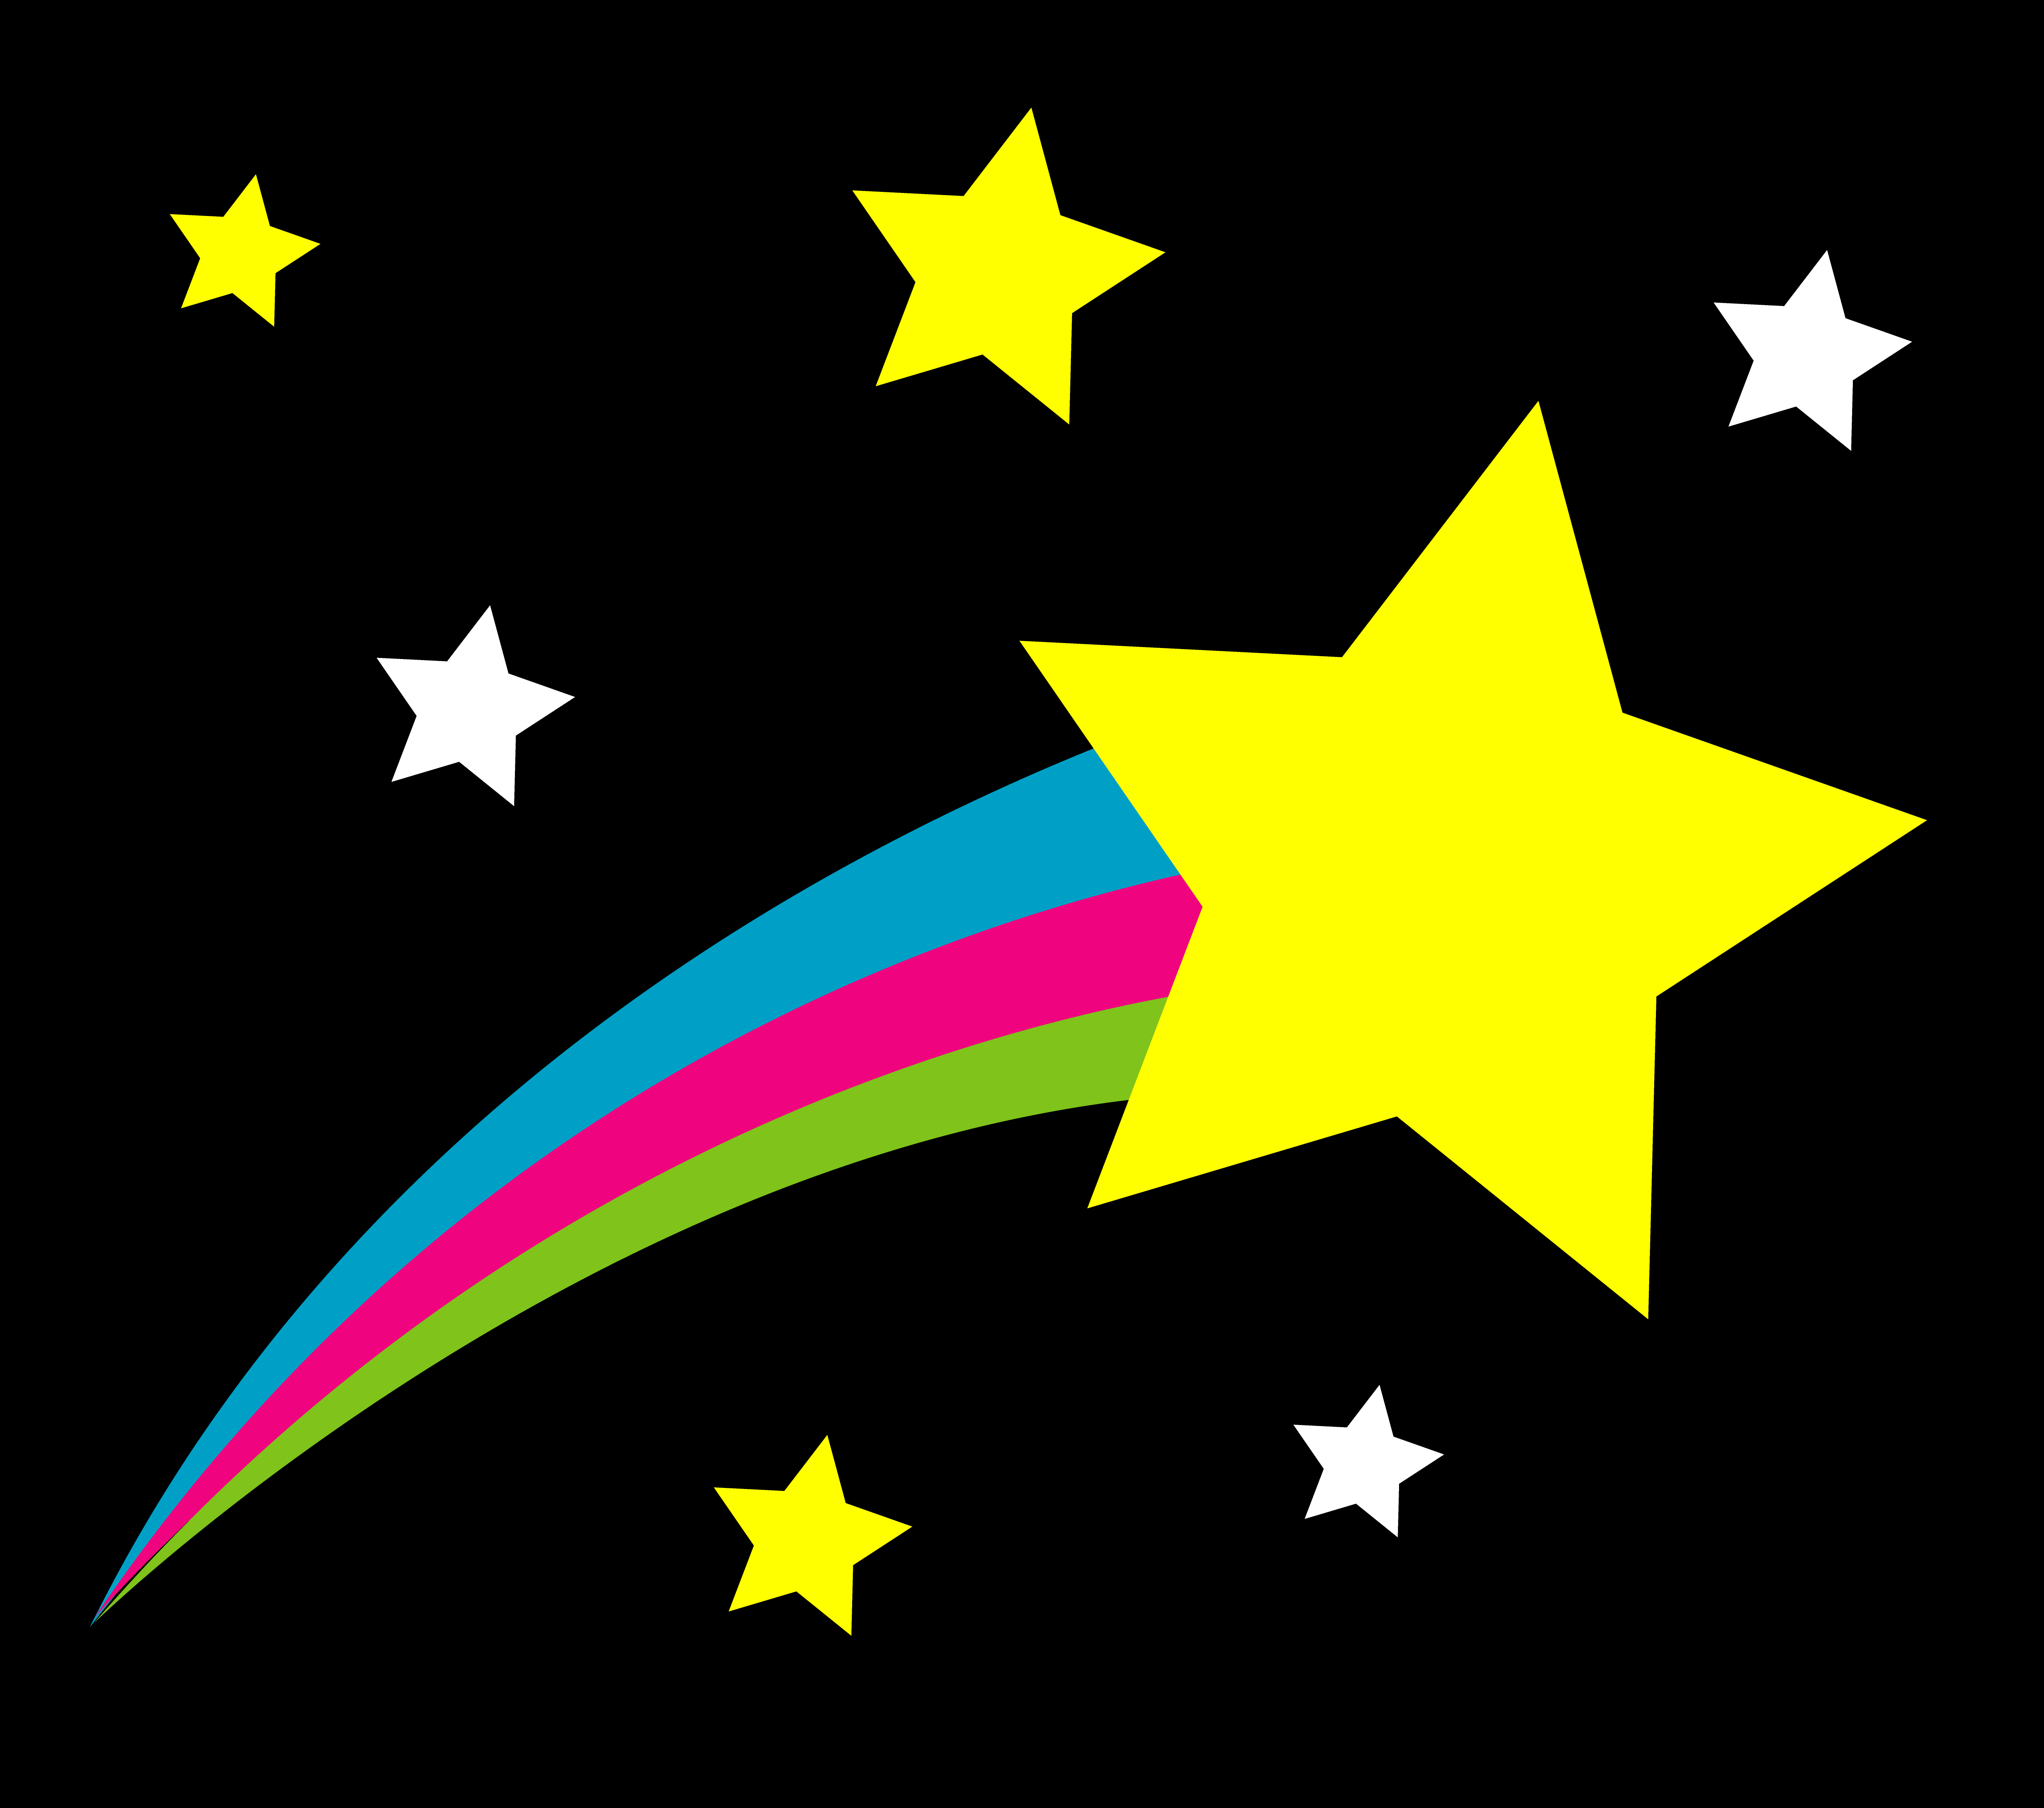 Shooting Star Graphics - Cliparts.co